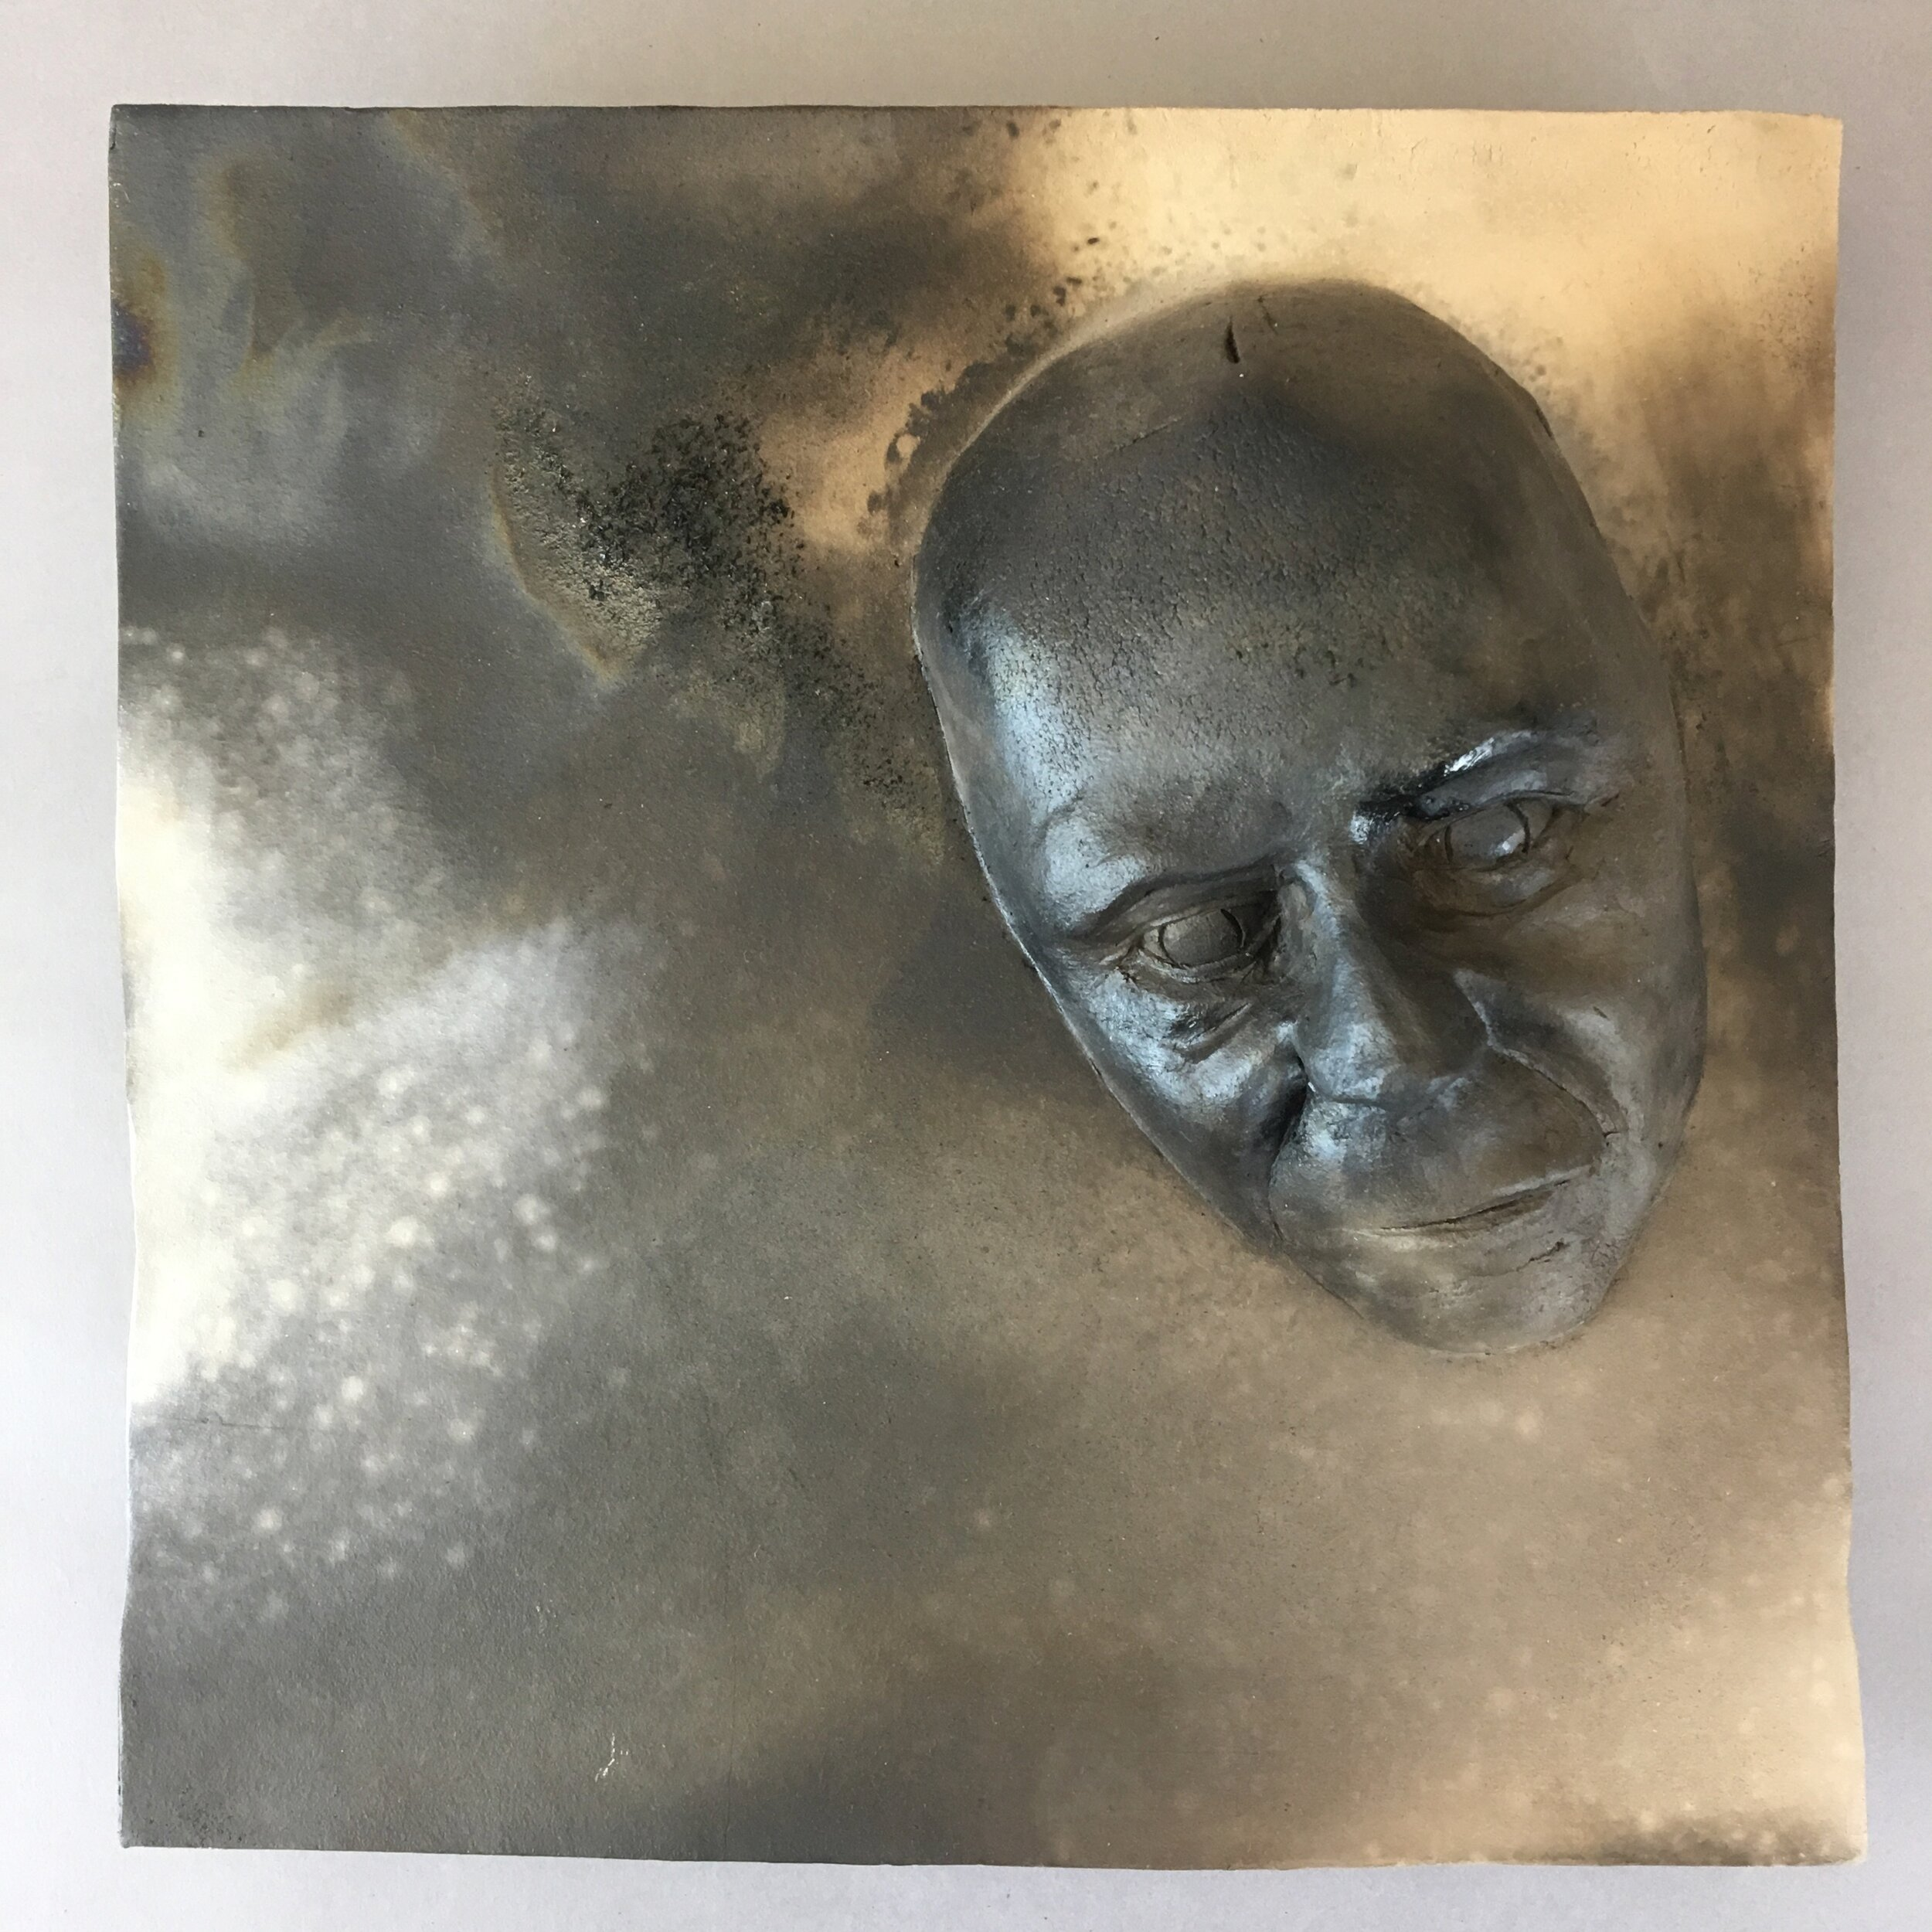 """Becoming  (panel 11 of 15)   Pit-fired ceramic on birch mounts  11.5"""" x 11.5"""" x variable thickness  Relief panels: $400 each  Flat panels: $75 each  Complete set: $4500  Click image to enlarge ⦿  Inquire"""